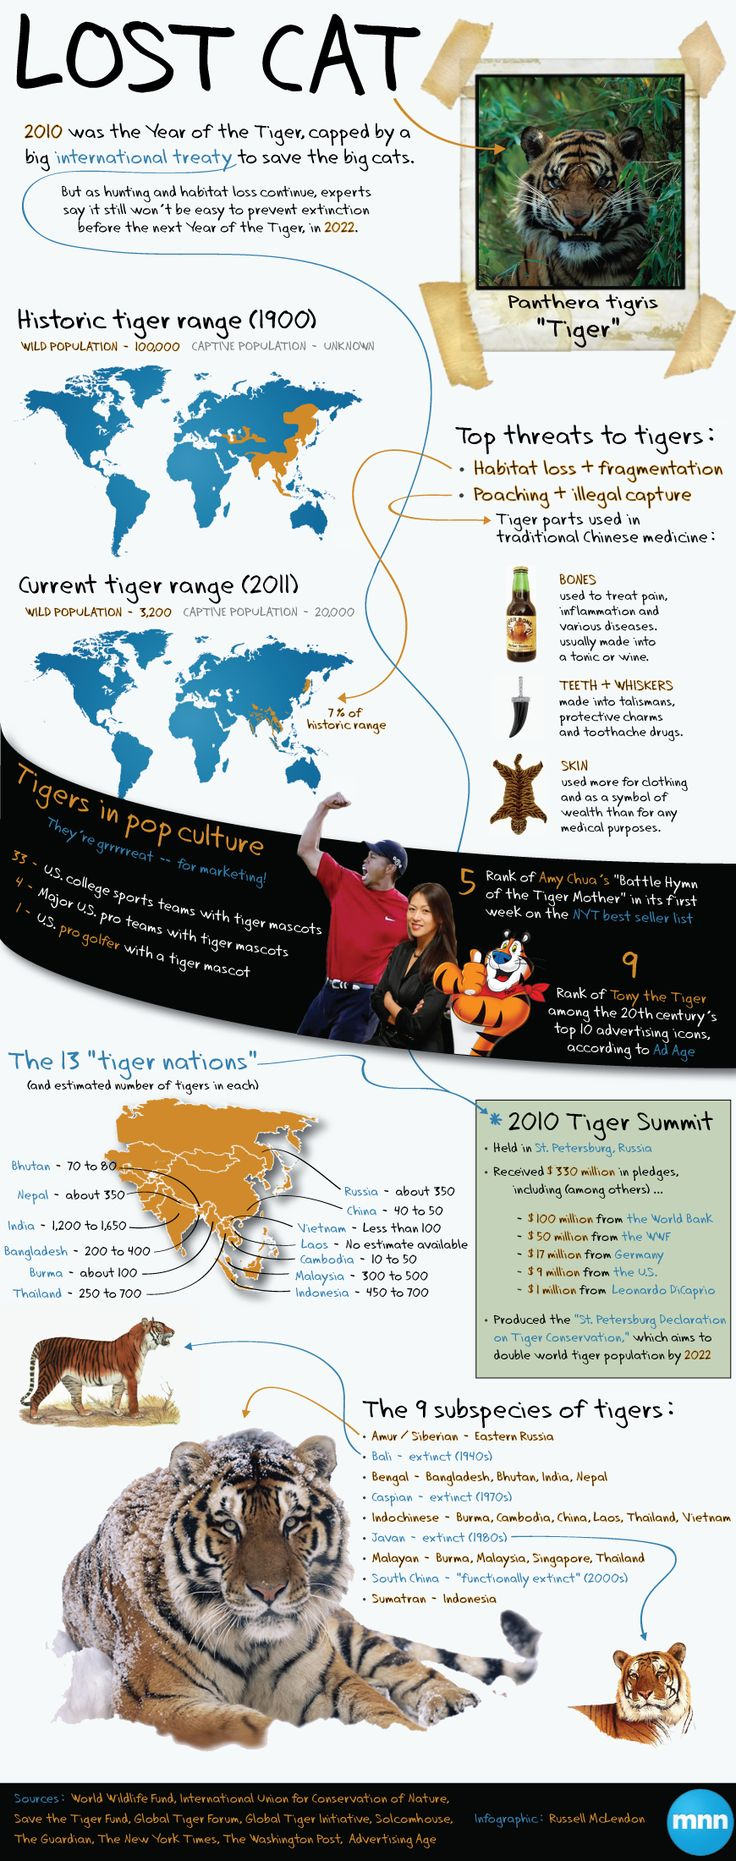 As one Year of the Tiger comes to an end, experts are racing to stop the big cats from going extinct by the next one in 2022 (Infographic)